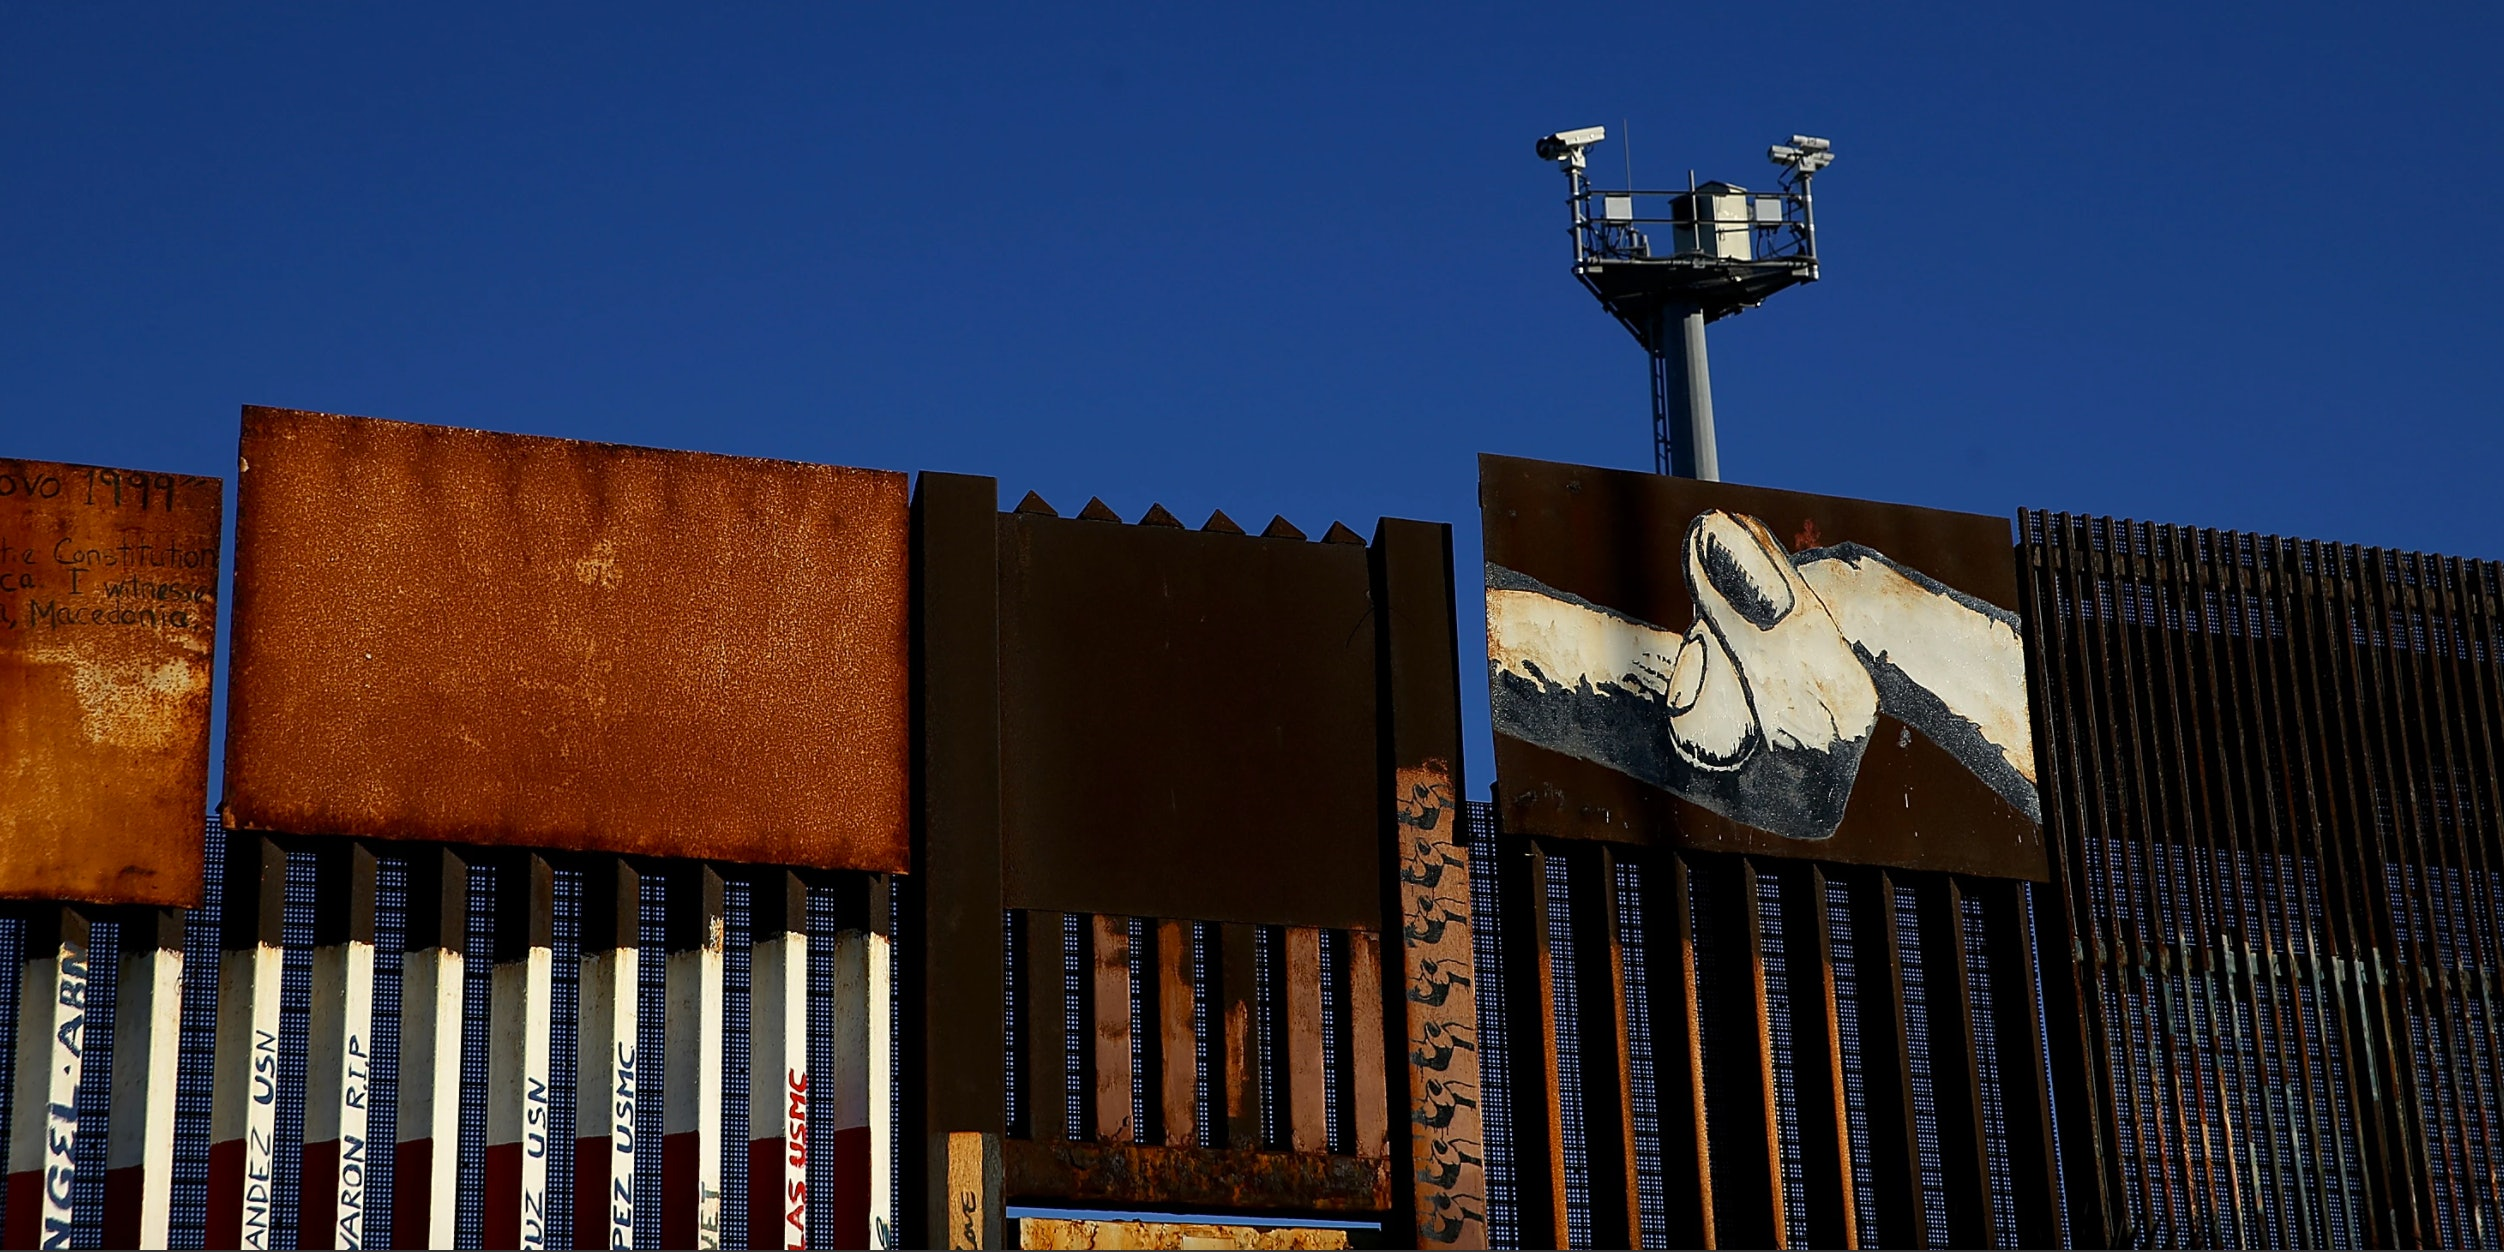 Trump's Wall Will Fail in the Era of Post-Humanism